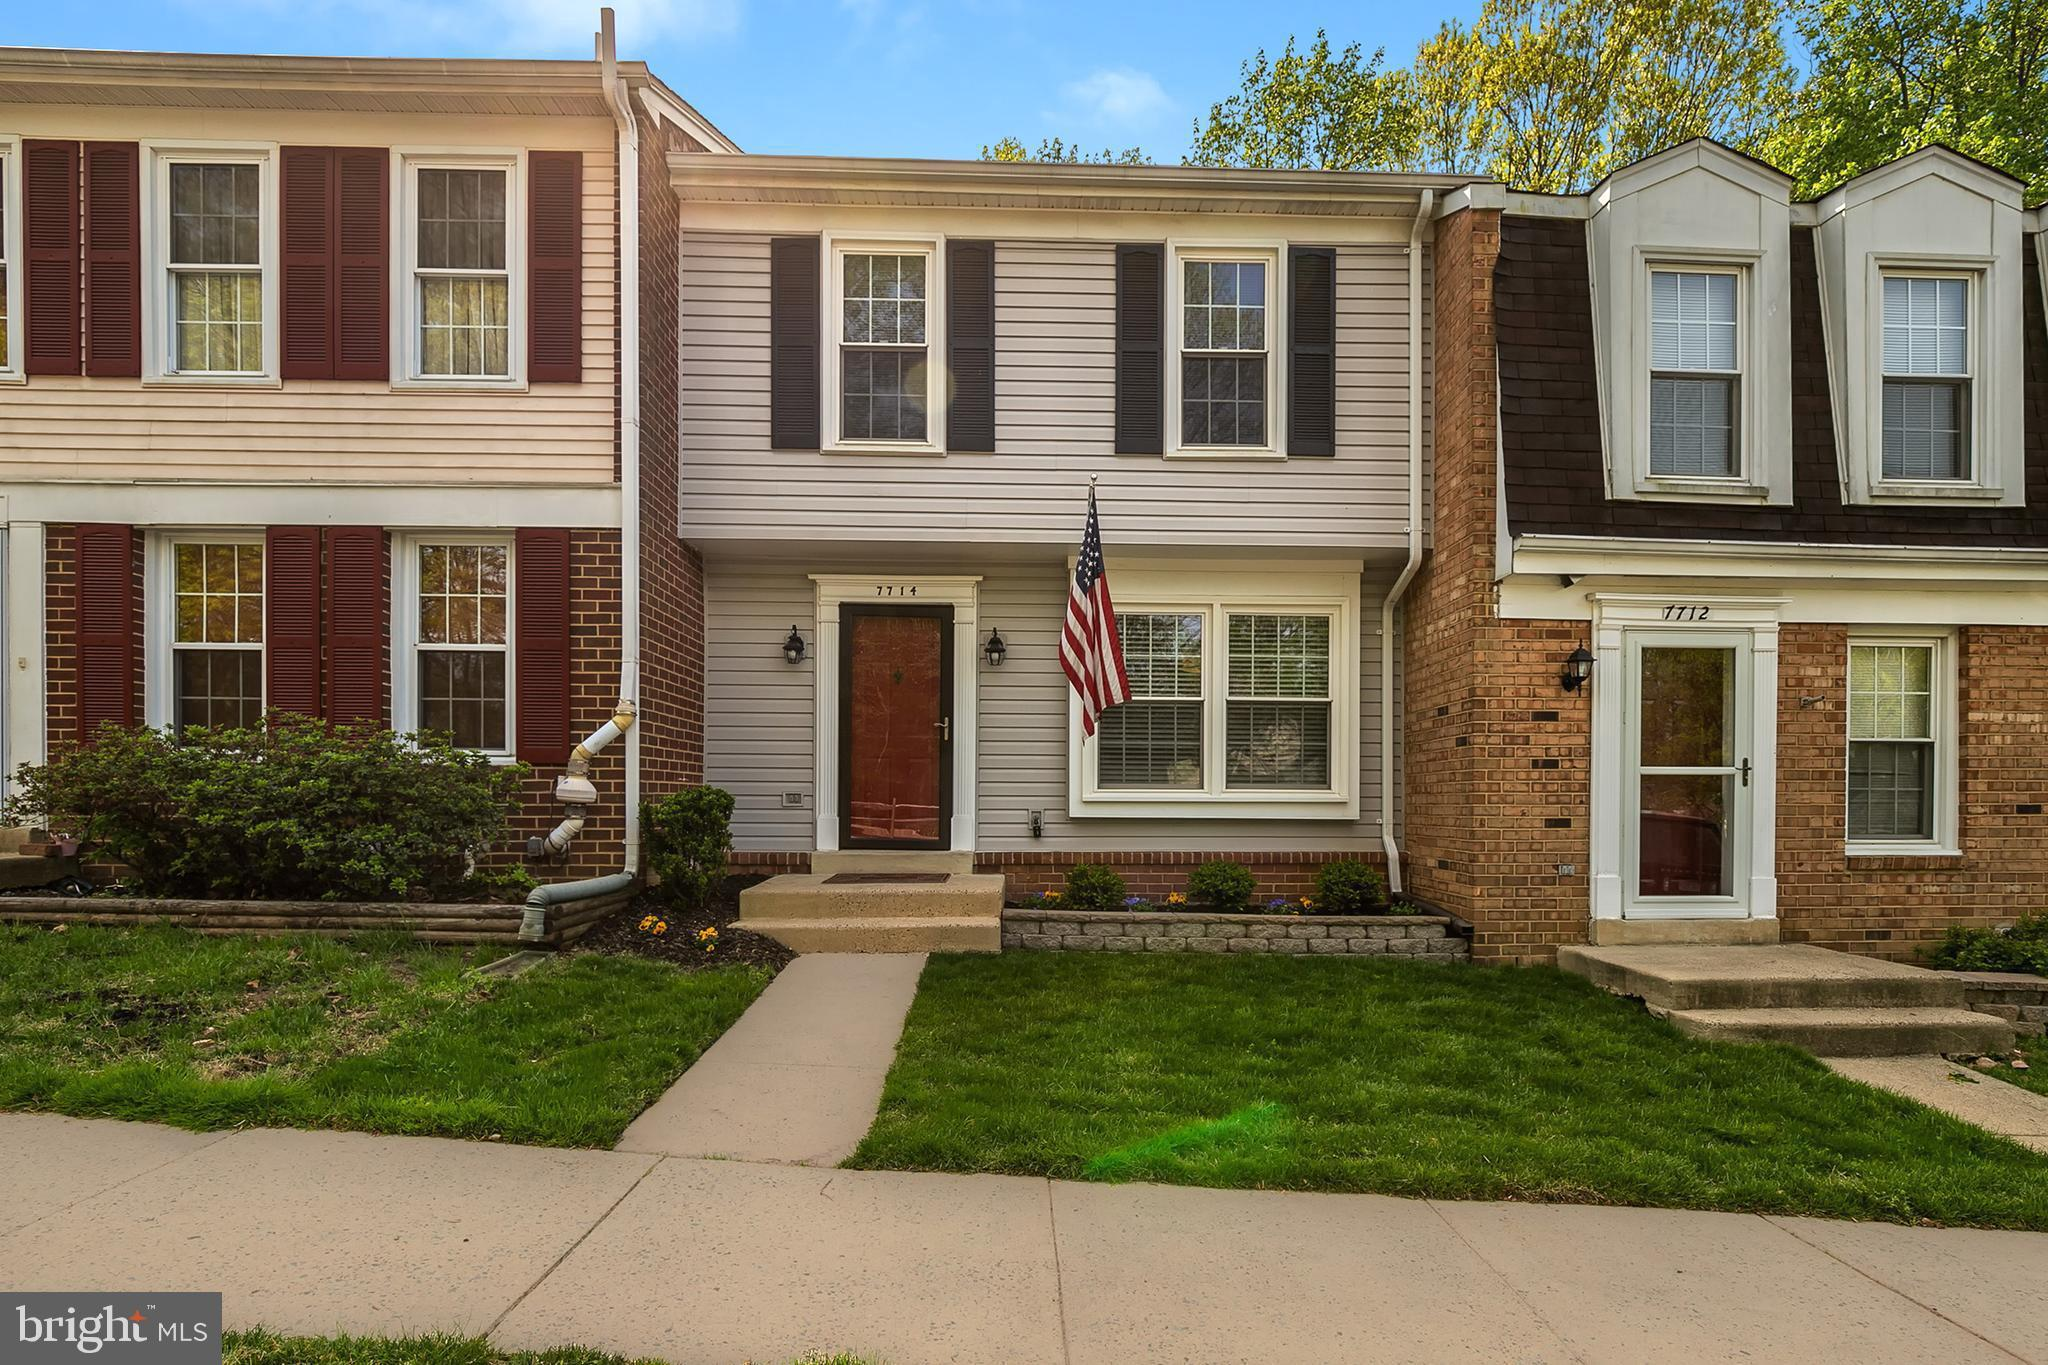 Best value in Springfield! This updated and lovingly-maintained townhome in a park-like setting offers three finished levels and includes a sizable fenced yard and patio area, ready for all your summer fun!  Enter the welcoming main level which has newer flooring, a functional open layout, and even a half bath. Downstairs is made for relaxing, playing, and enjoying the cozy fireplace on cool evenings; there is also plenty of storage and another half bath. Upstairs provides three bedrooms, including a master with en-suite, and another full bath. Home warranty included! Two designated parking spots at your front door and just steps to the community playground. Close to shopping, dining, and entertainment across Northern Virginia and DC. Hop on the nearby Fairfax County Parkway, easy access to I-95, commuting to Fort Belvoir is a breeze, 15 minutes to Springfield Town Center and Kingstowne. West Springfield pyramid. Backing to trees, this is a beautiful and comfortable space to call home!